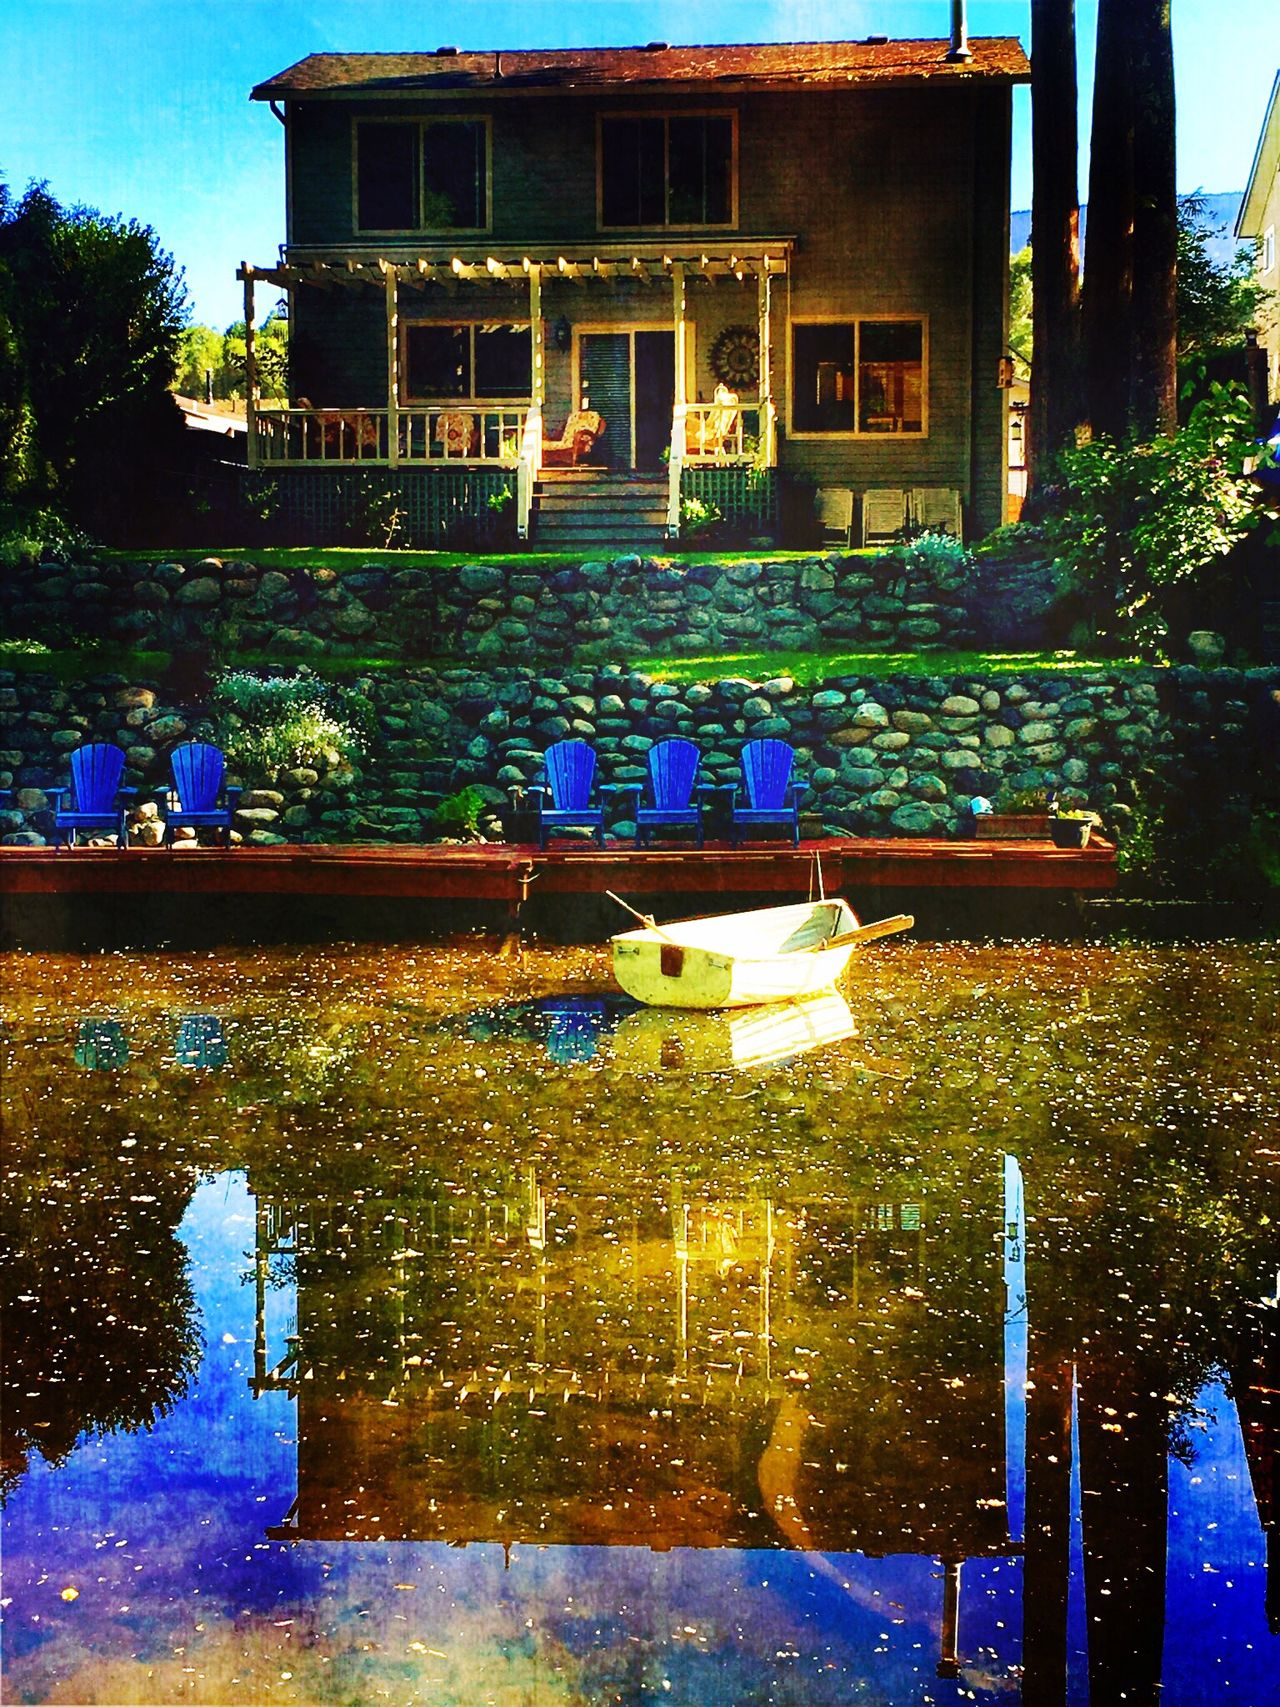 Paradise Peace And Quiet Guiet Place Springtime Boat Water Reflections Drifting Waiting For Adventure Teflection